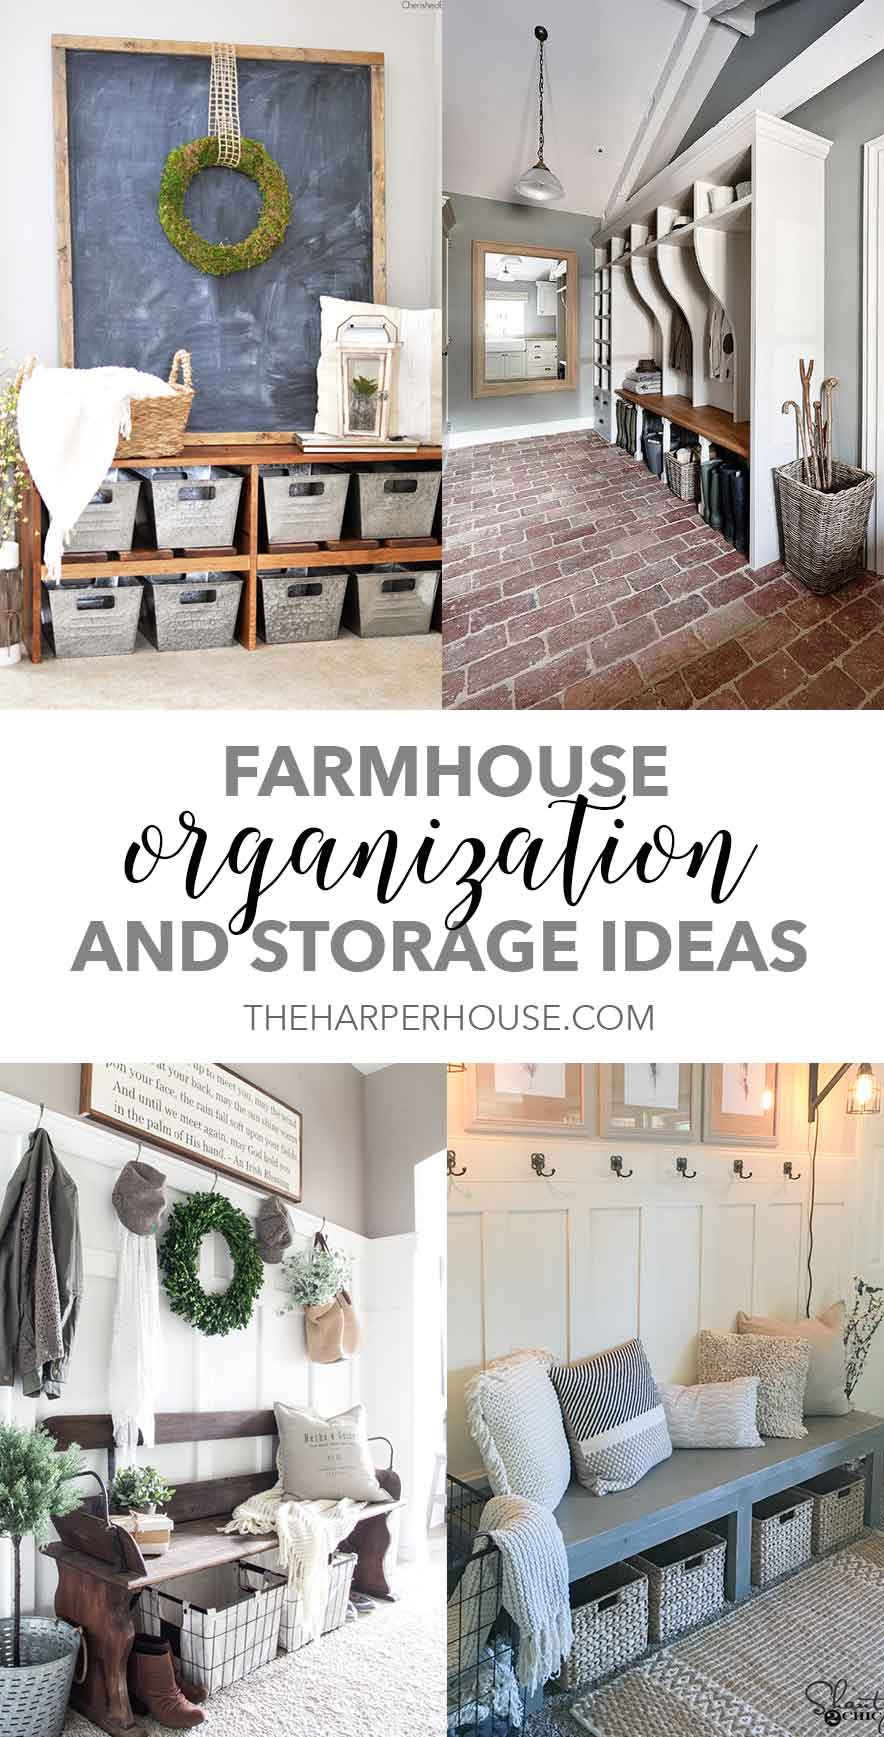 Farmhouse Organization and Storage Ideas | The Harper House